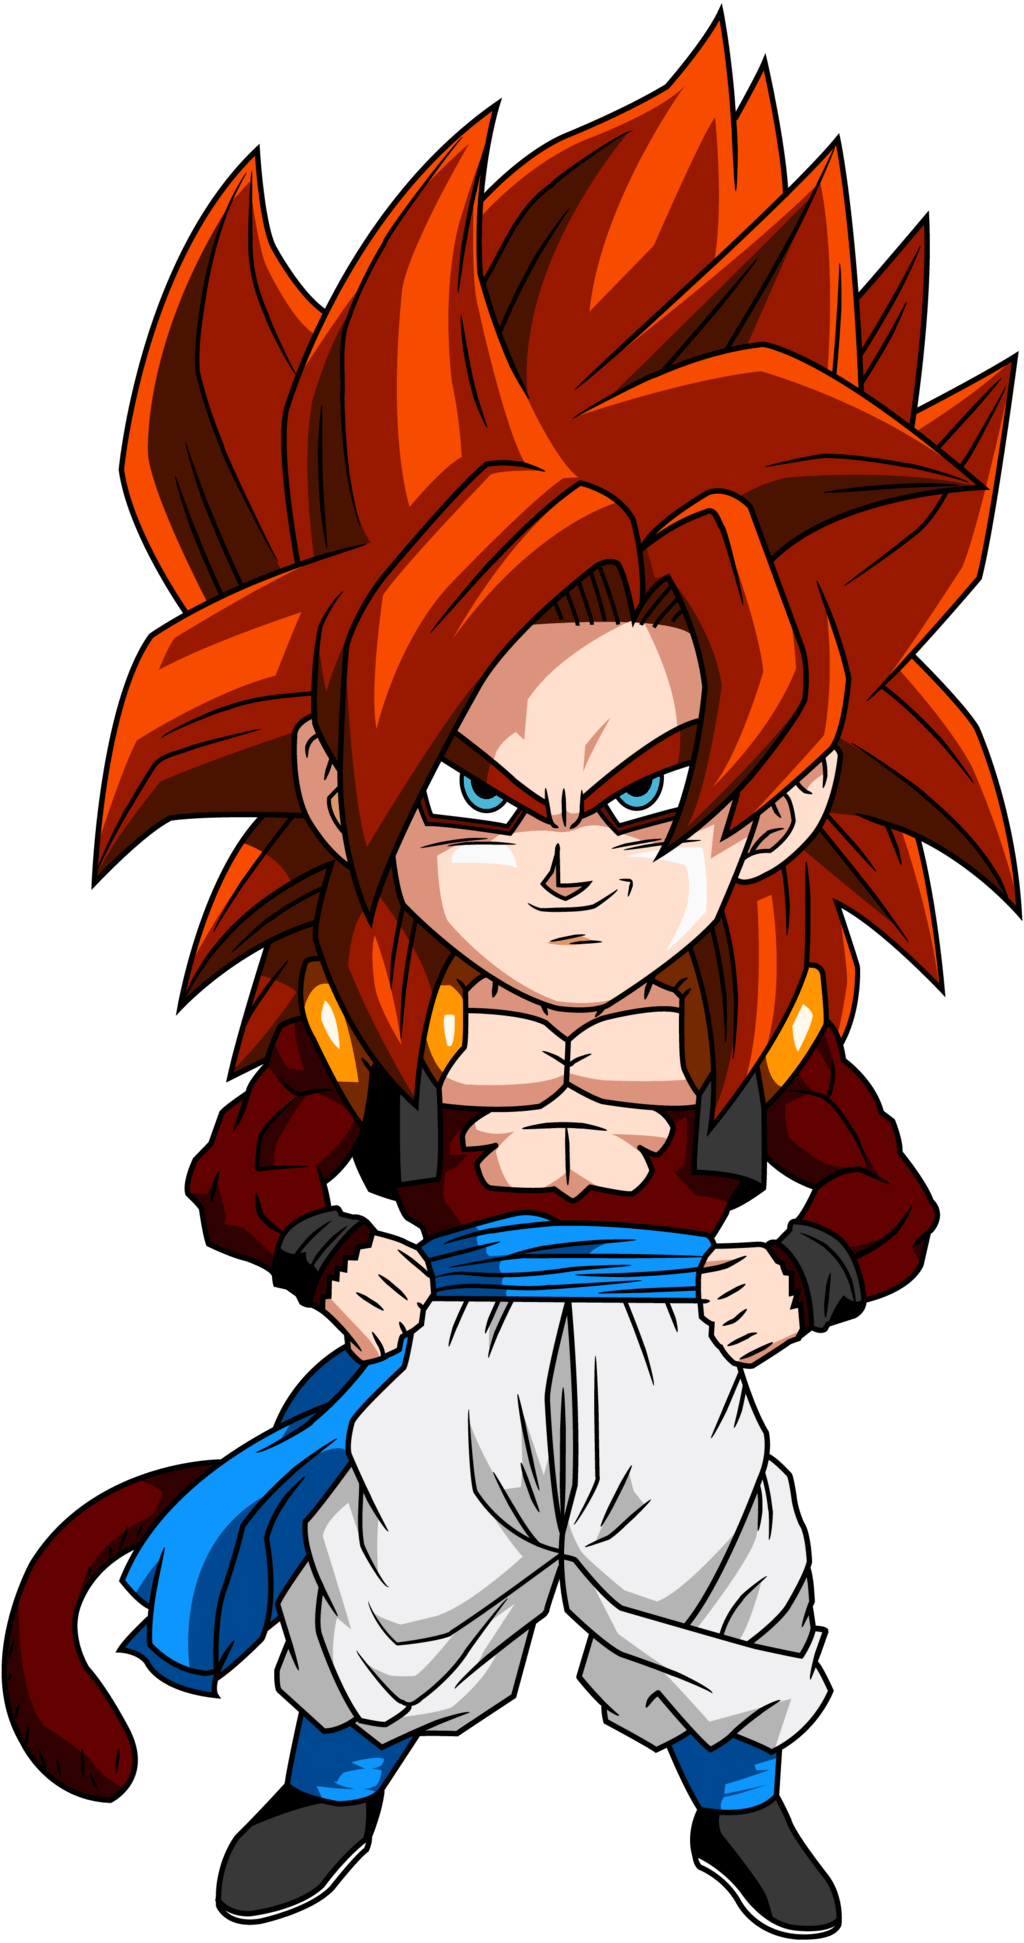 Gogeta SSJ4 Wallpapers - Wallpaper Cave Ssj4 Gogeta